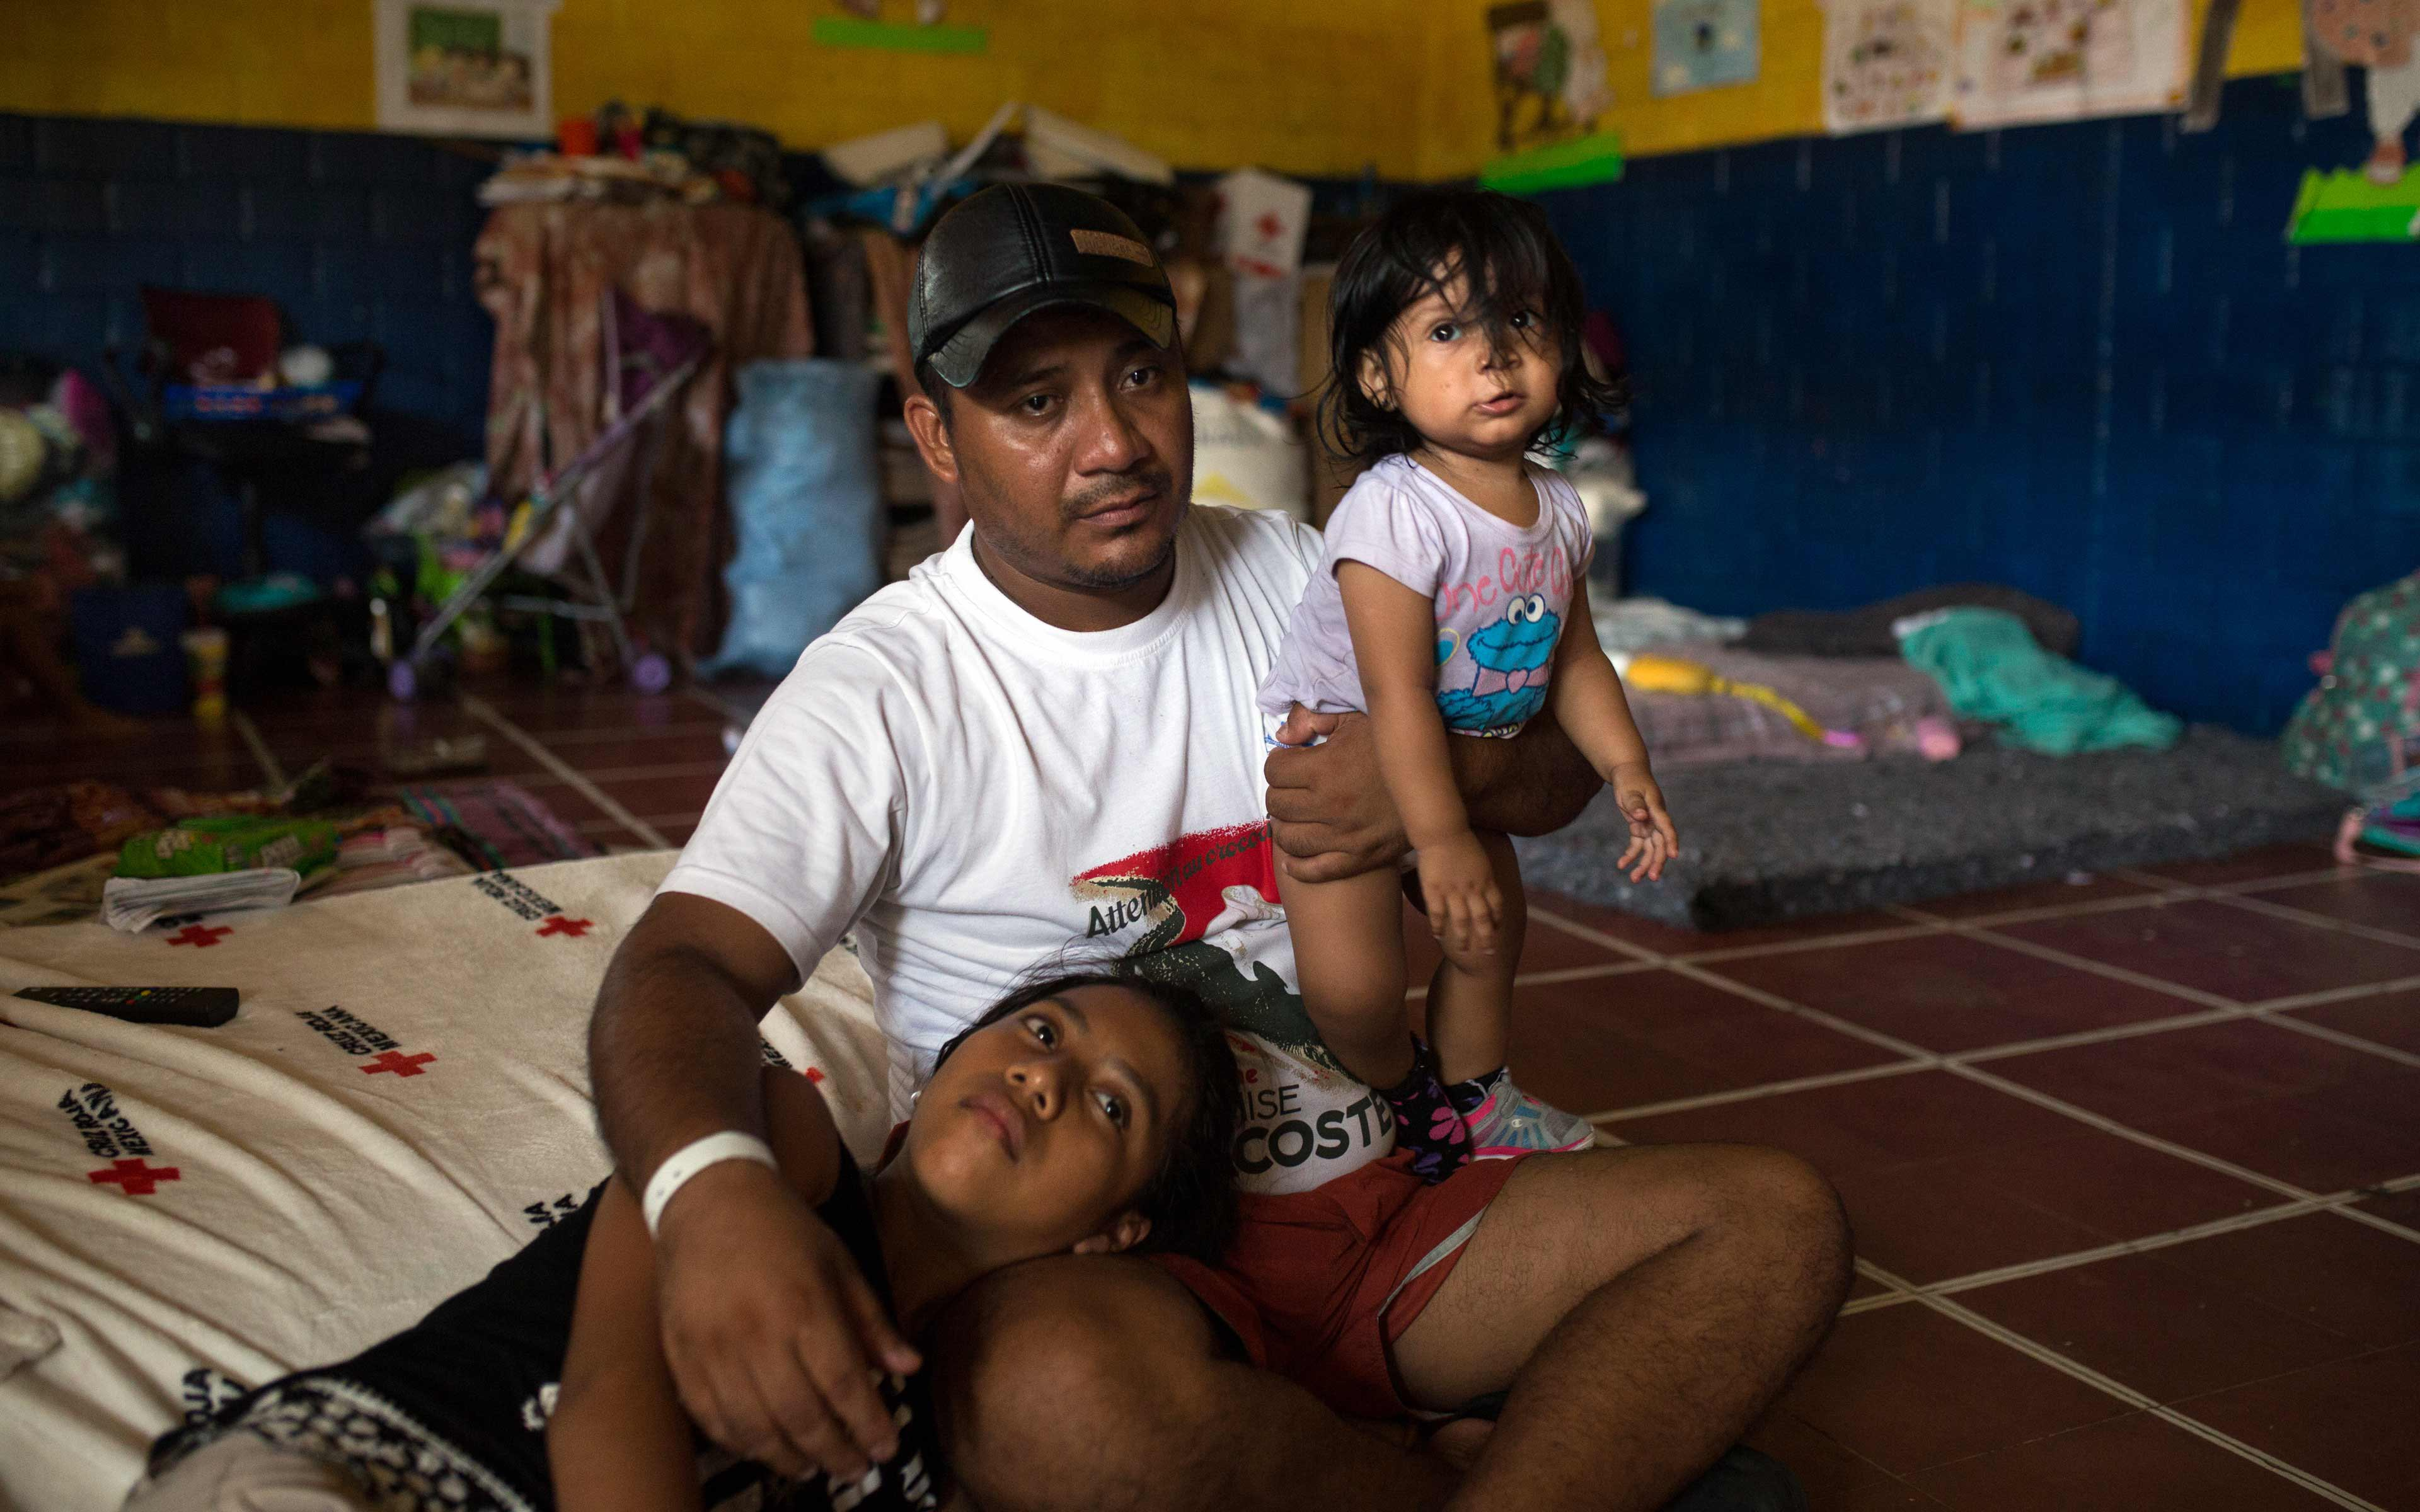 Edwin López and his daughters Melanie (11) and Masiel (1), in the classroom where they are living temporarily.